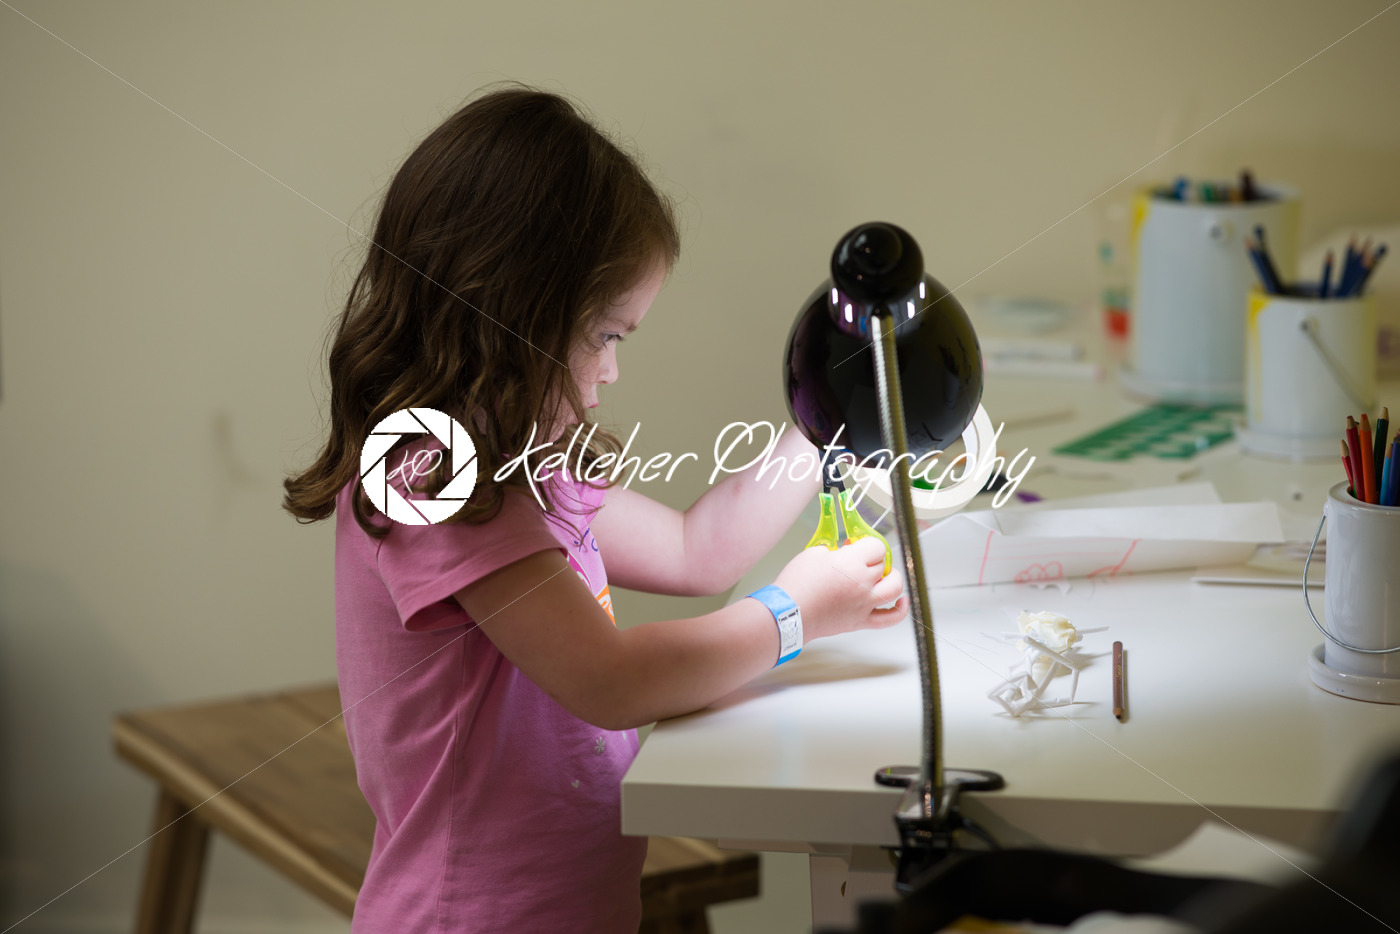 Young girl cutting tape at desk - Kelleher Photography Store